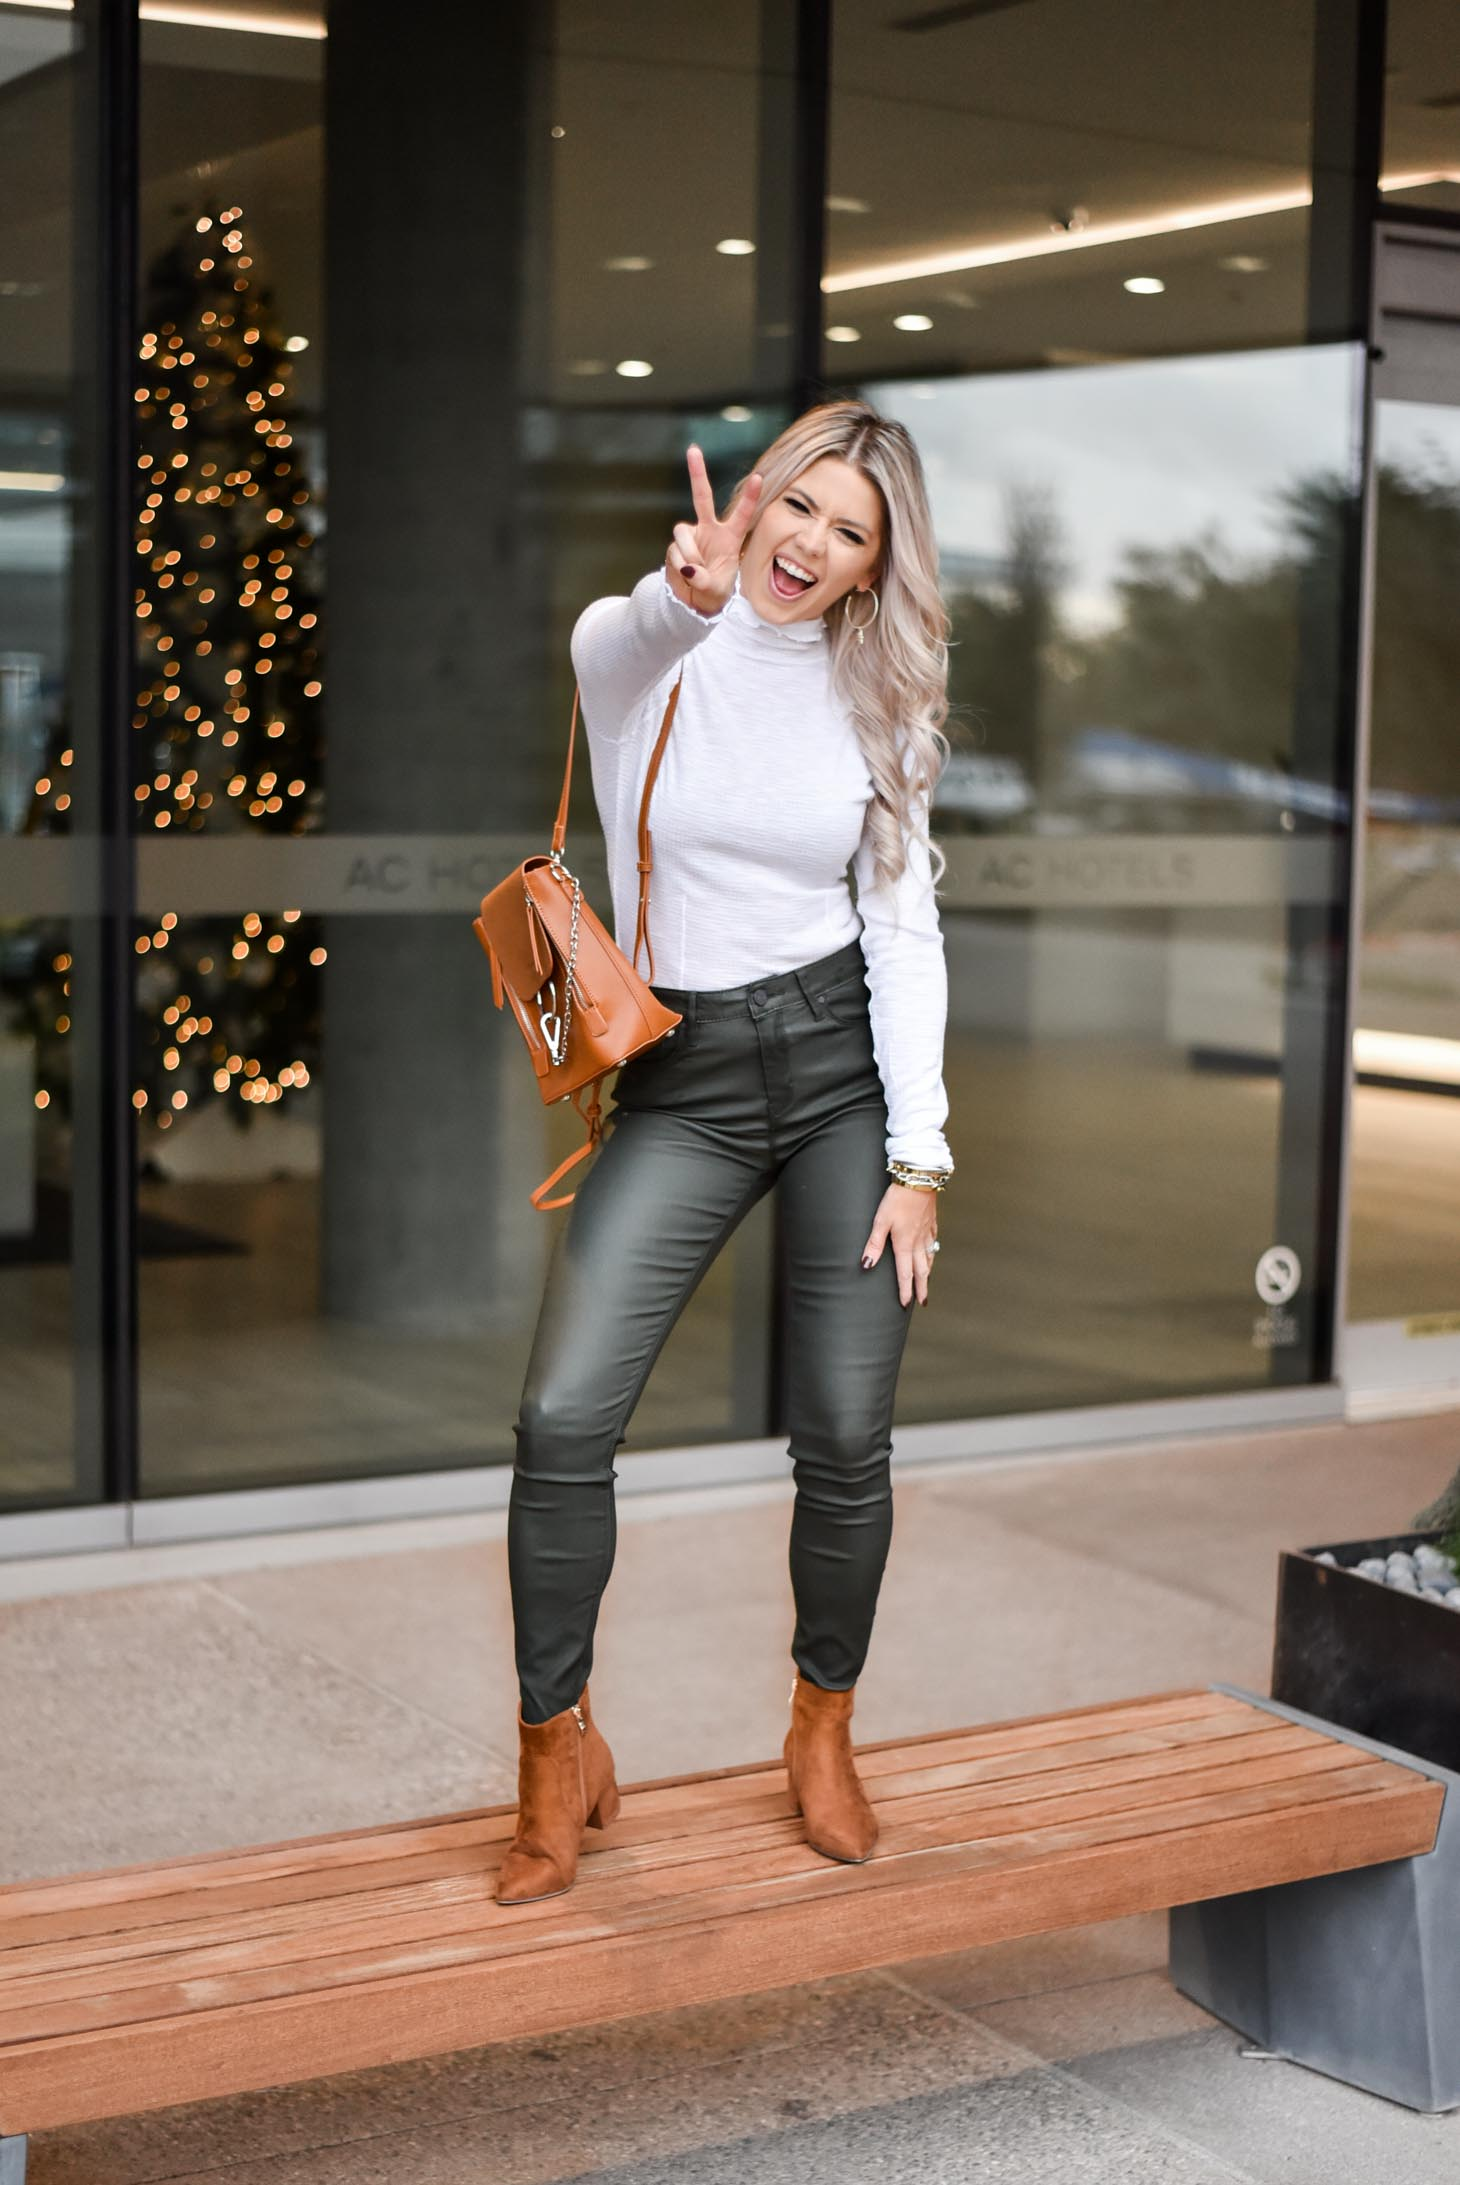 Erin Elizabeth of Wink and a Twirl shares the perfect leather pants and turtleneck look from Lulus during her stay at the AC Hotel Phoenix Biltmore in Phoenix, Arizona